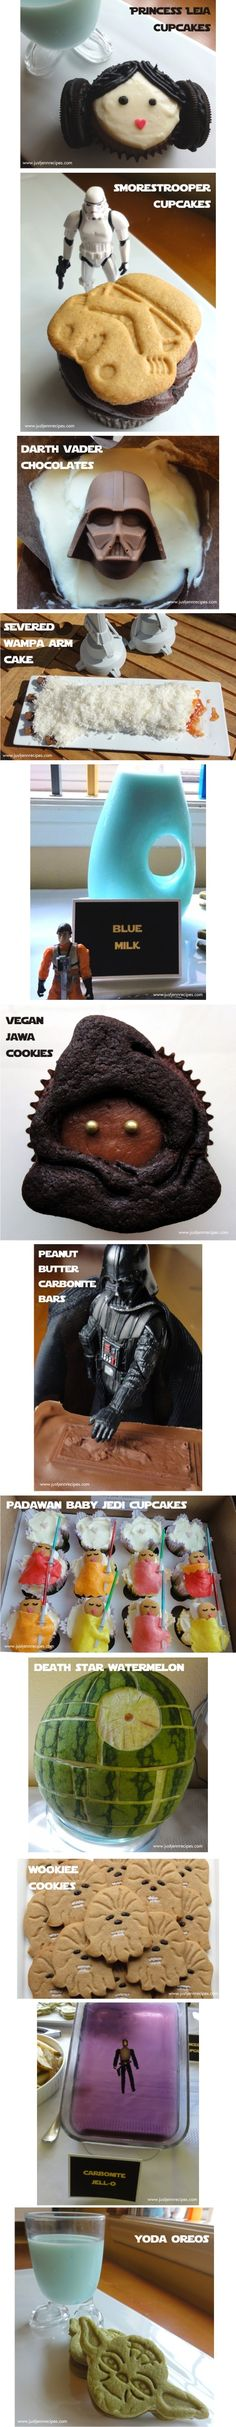 Star Wars recipes #MayTheFourthBeWithYou